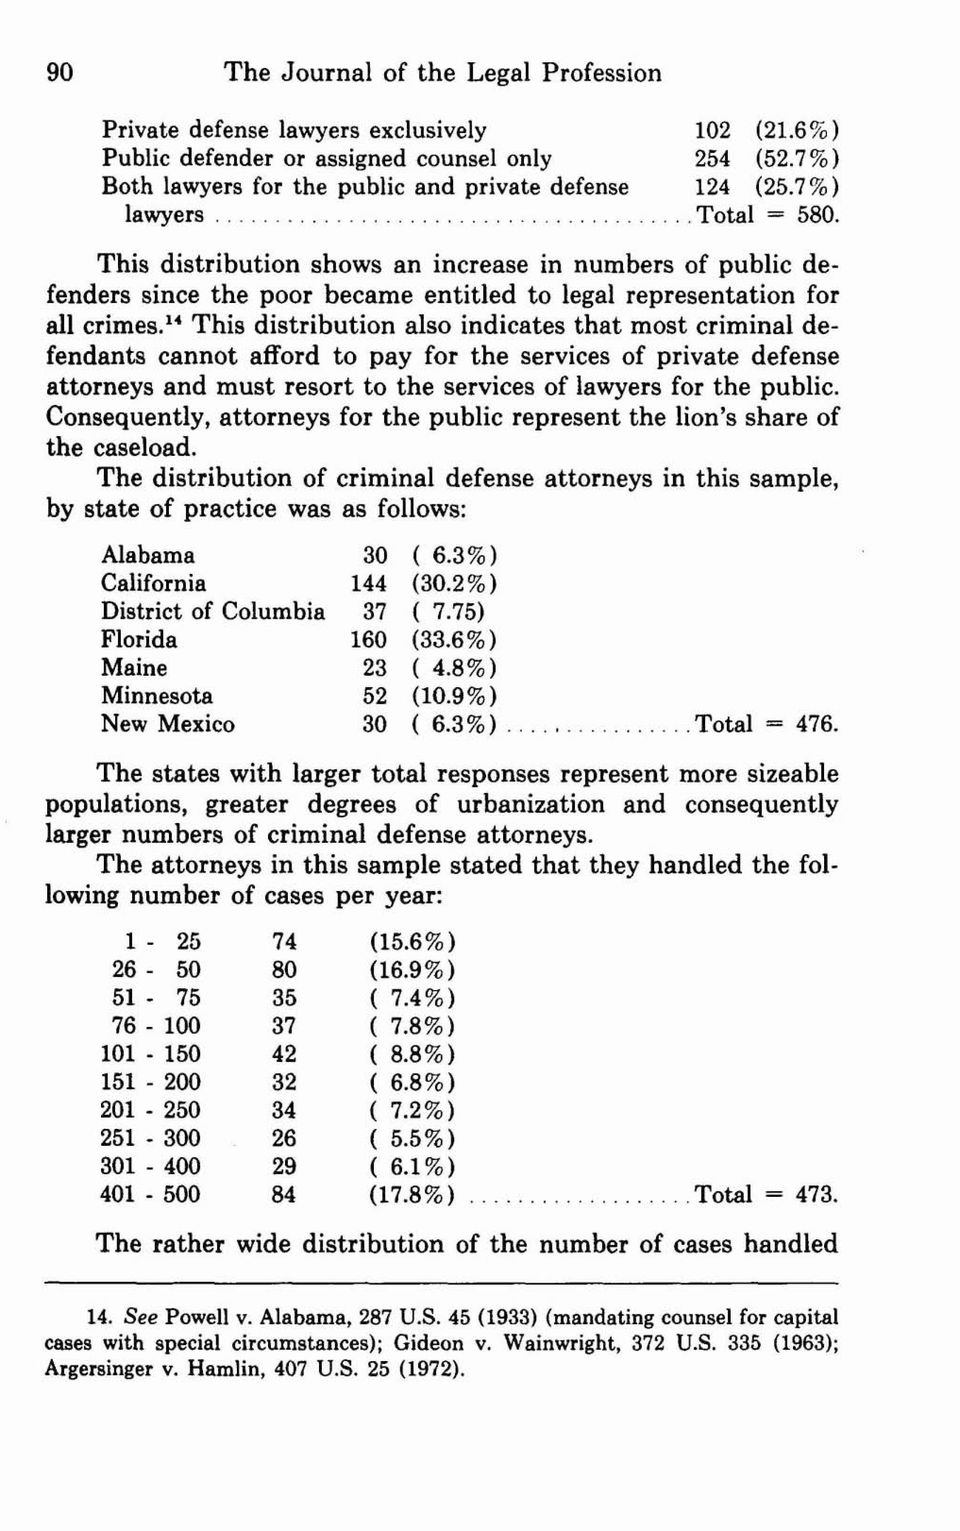 14 This distribution also indicates that most criminal defendants cannot afford to pay for the services of private defense attorneys and must resort to the services of lawyers for the public.